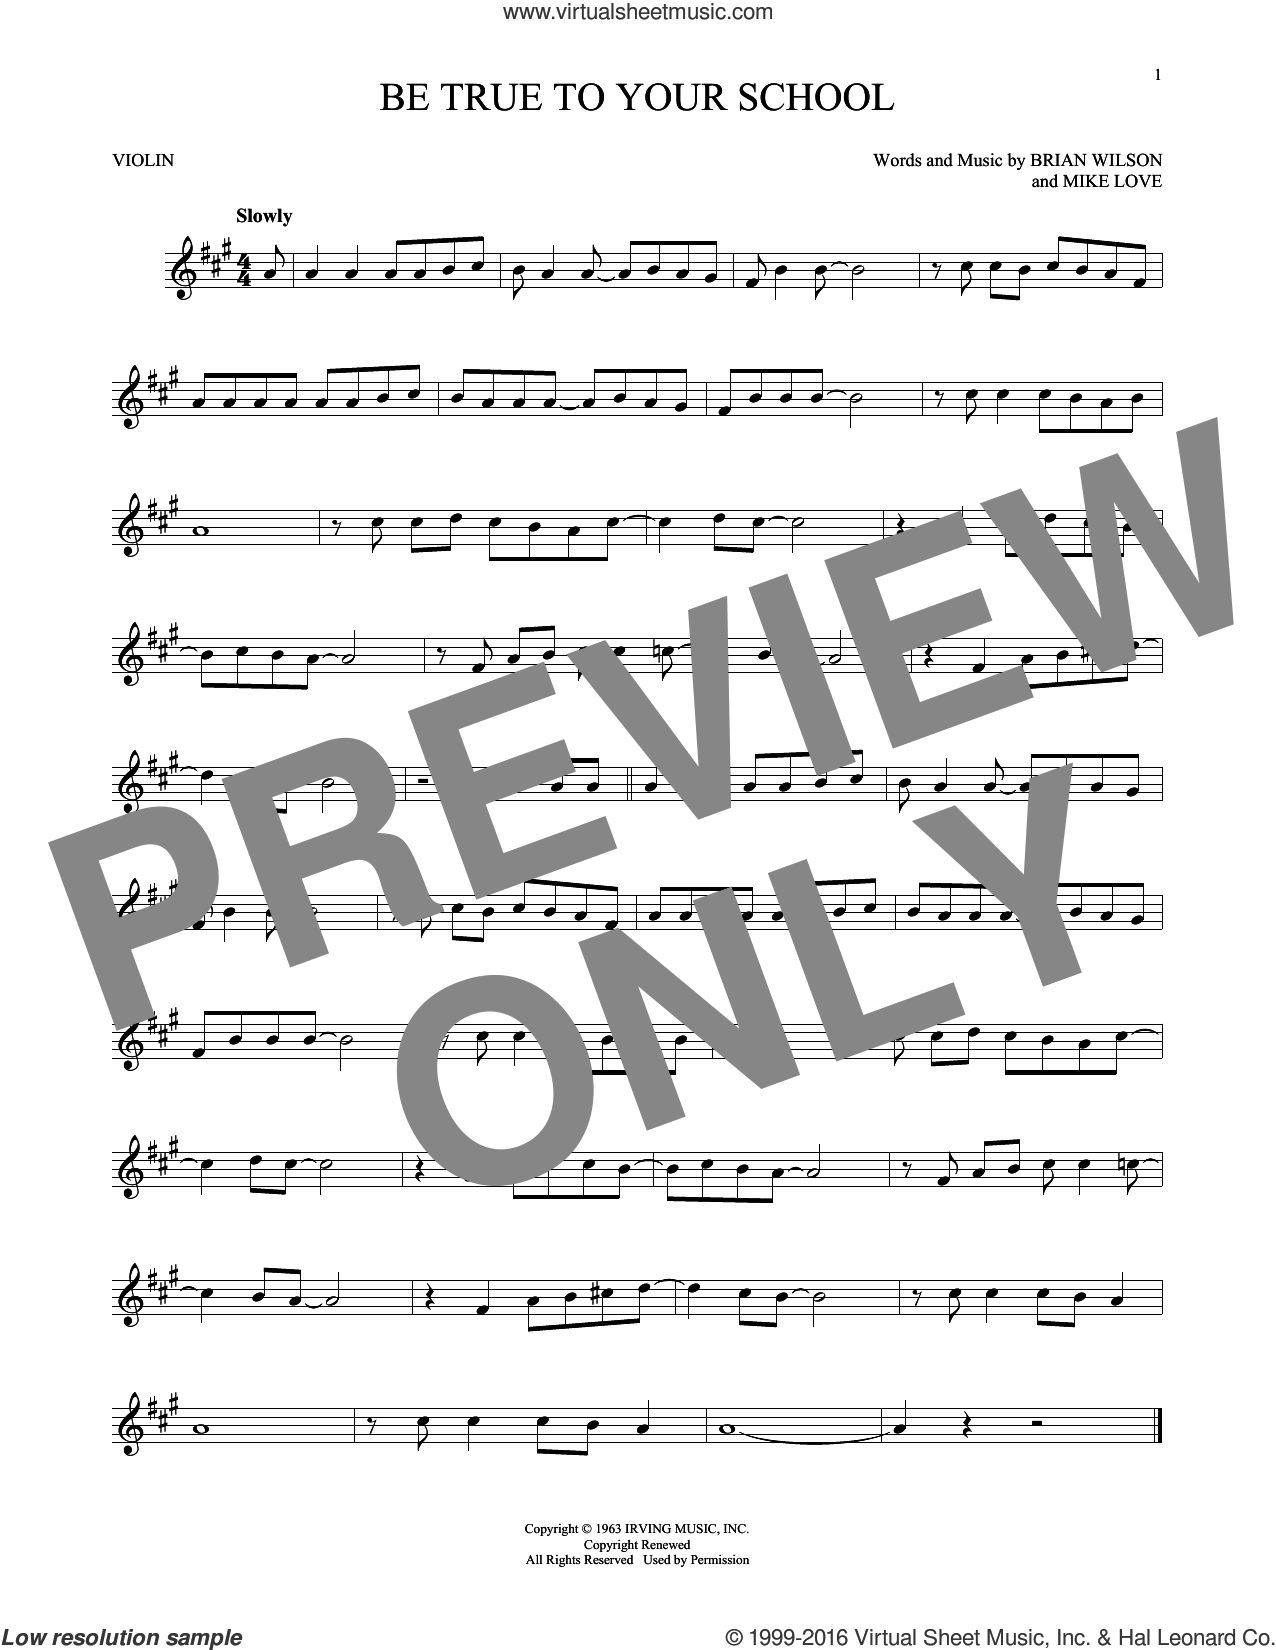 Be True To Your School sheet music for violin solo by Mike Love, The Beach Boys and Brian Wilson. Score Image Preview.